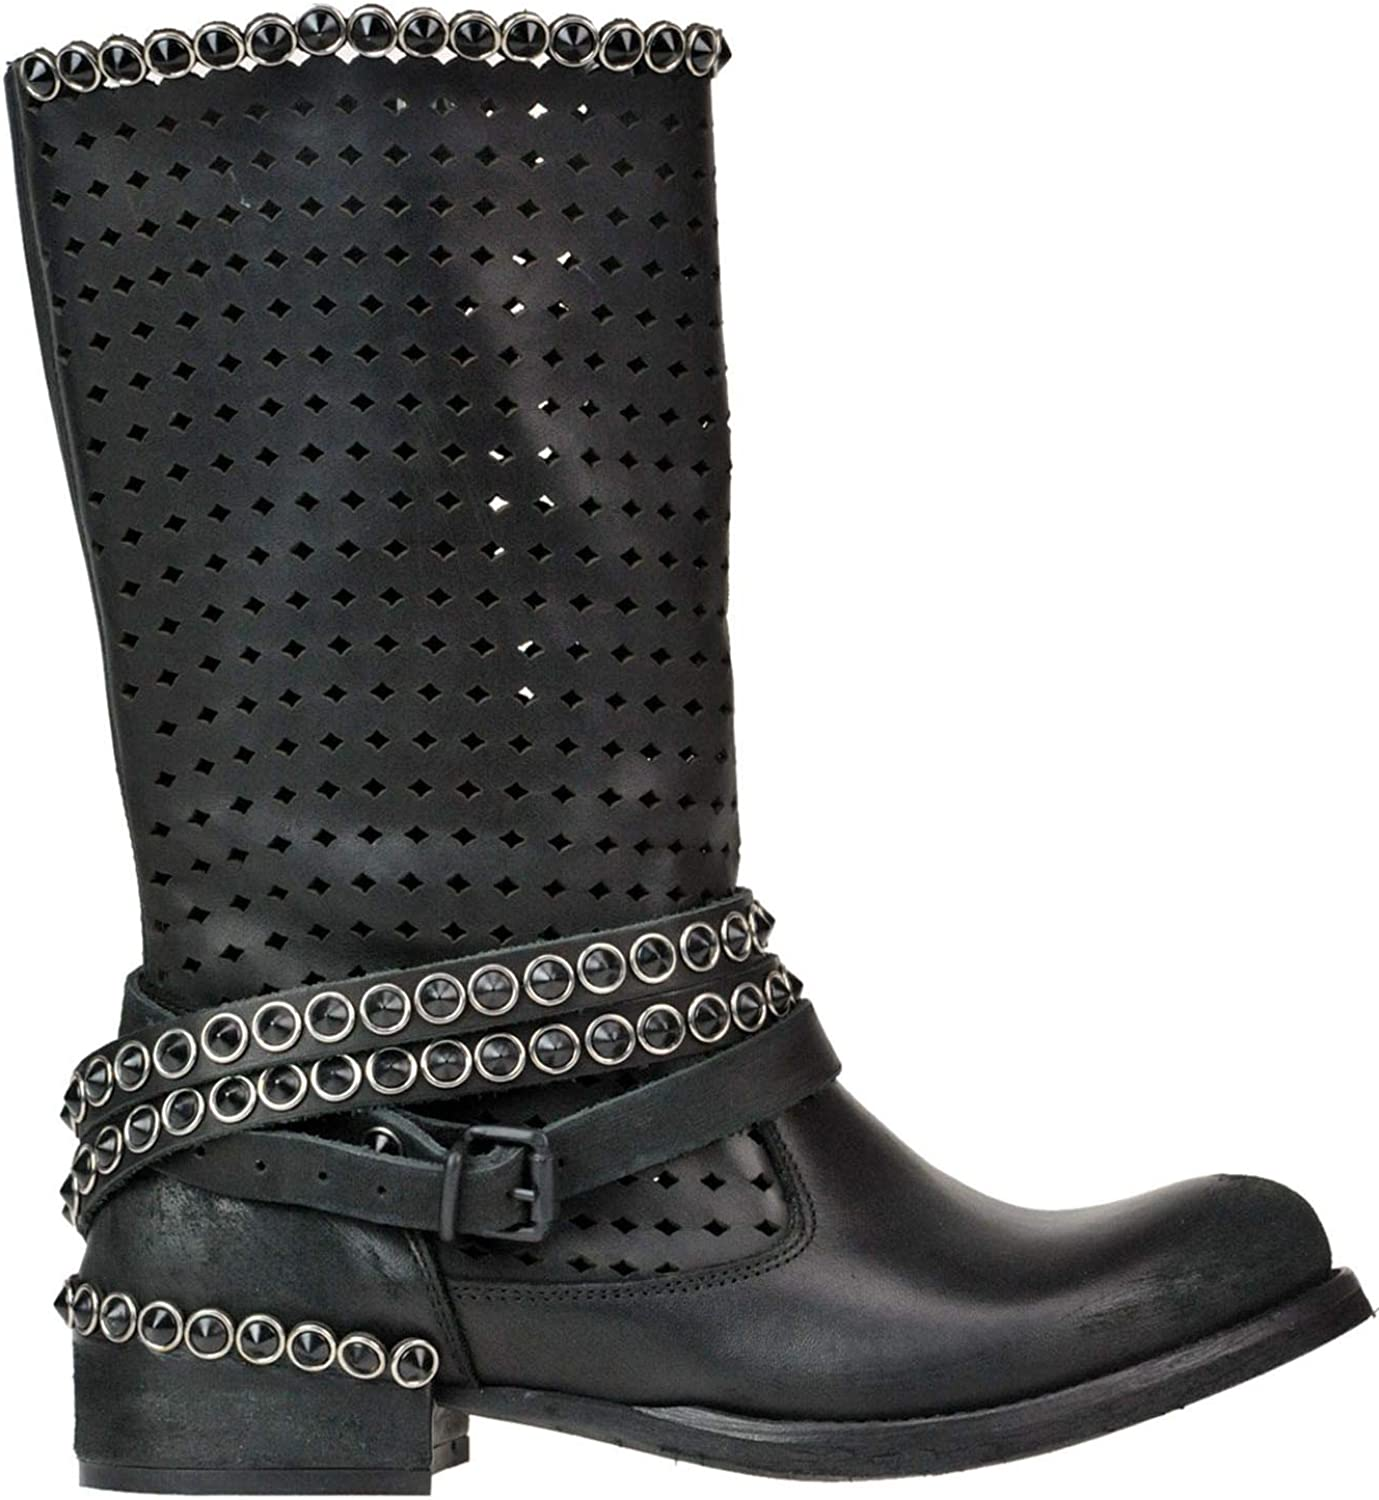 METISSE Women's MCGLCAS000005019E Black Leather Ankle Boots